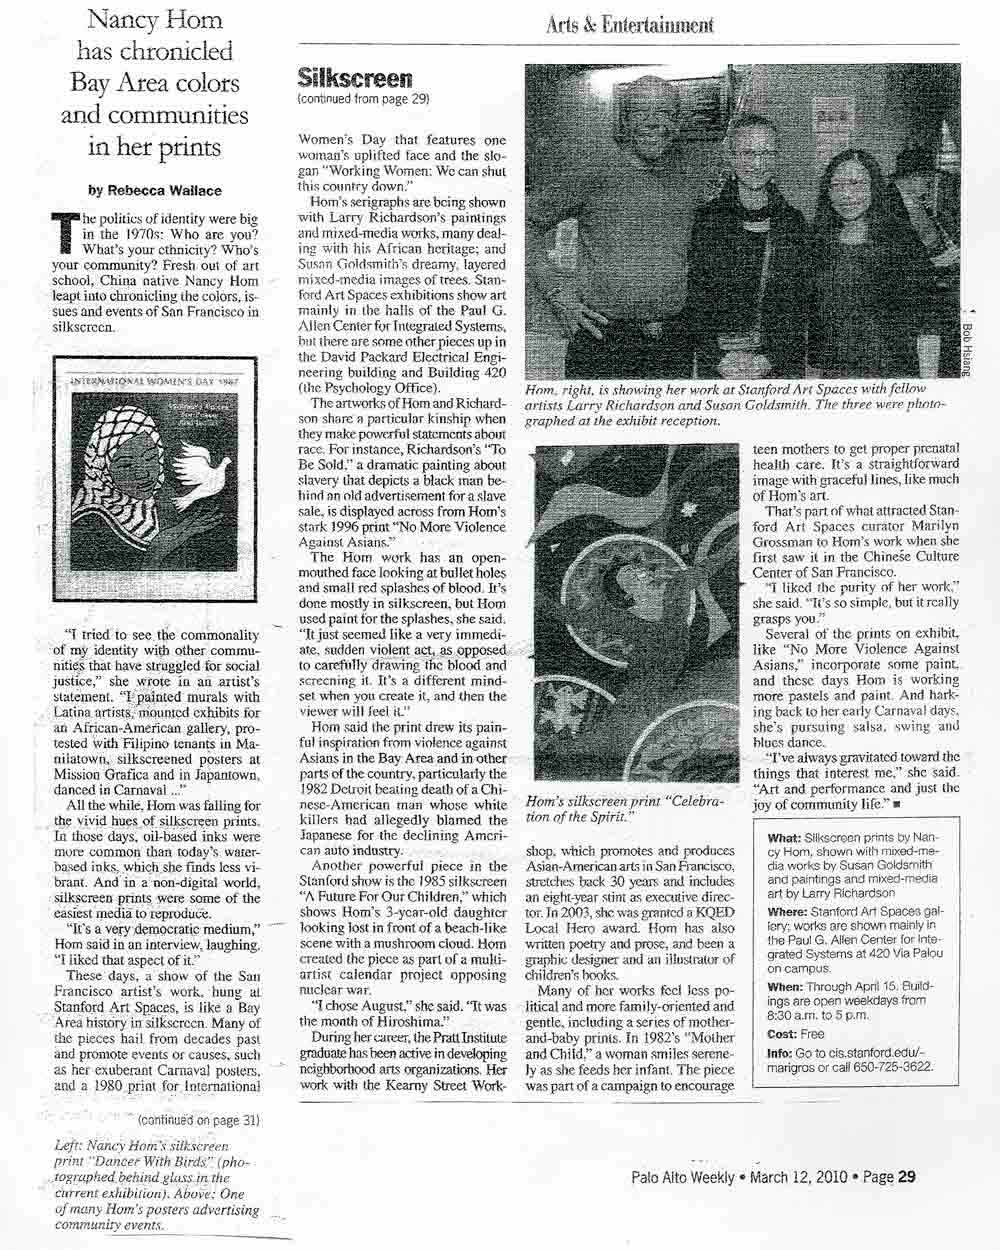 "Article ""Nancy Hom has chronicled Bay Area colors and communities in her prints"" by Rebecca Wallace, 2010"